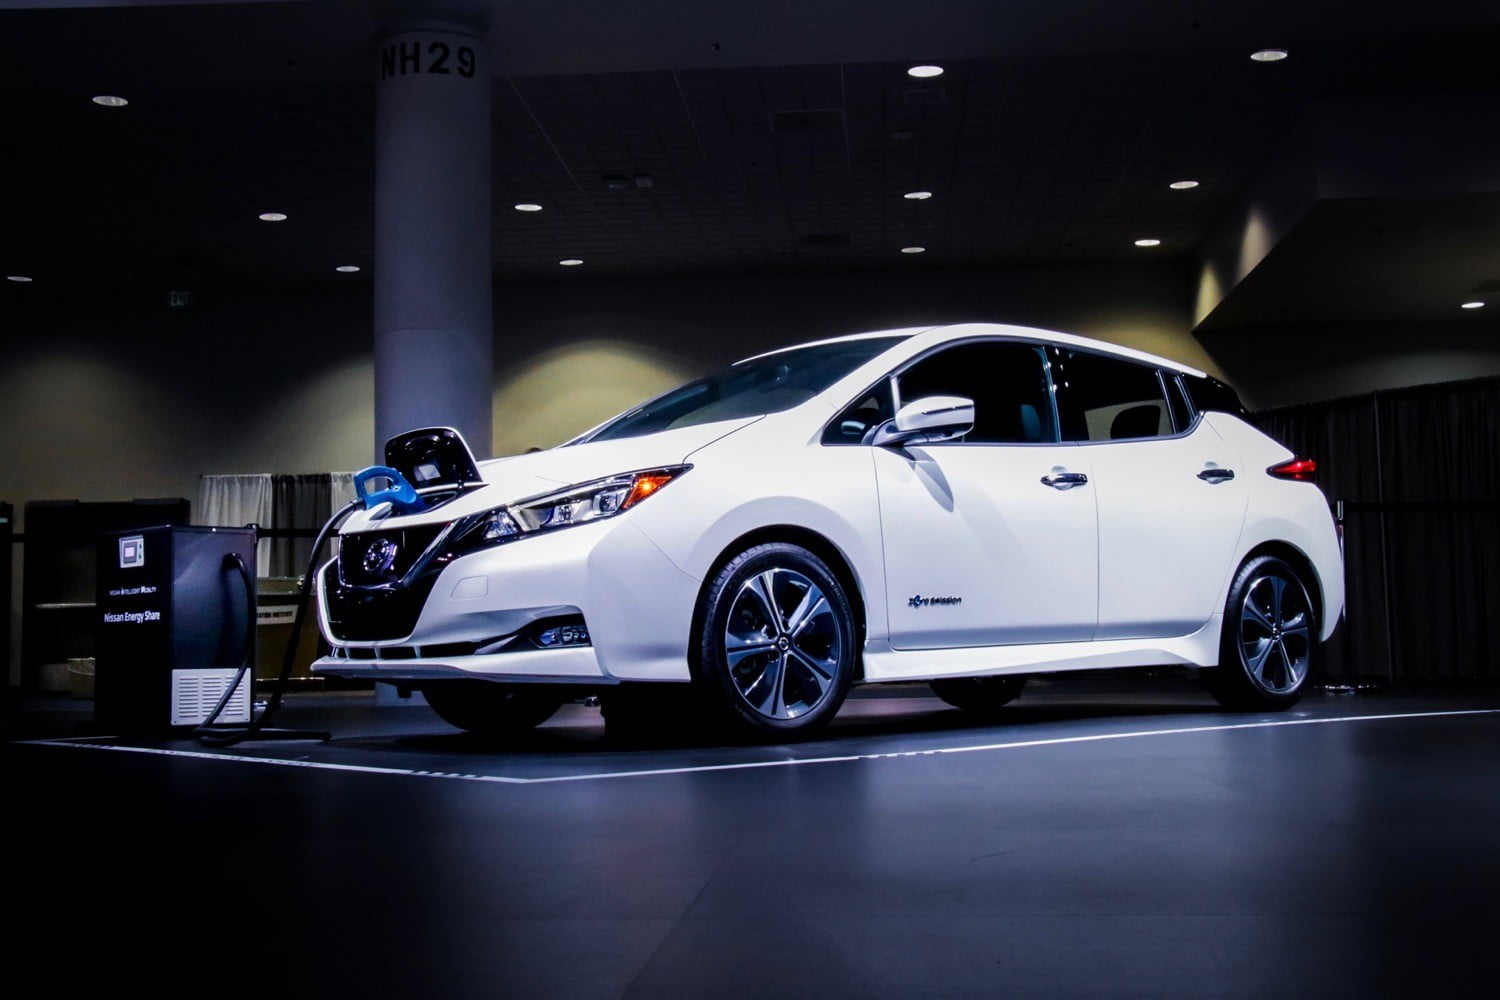 Leaf Electric Car Batteries Can Outlast Vehicles By Up To 12 Years Nissan Claims